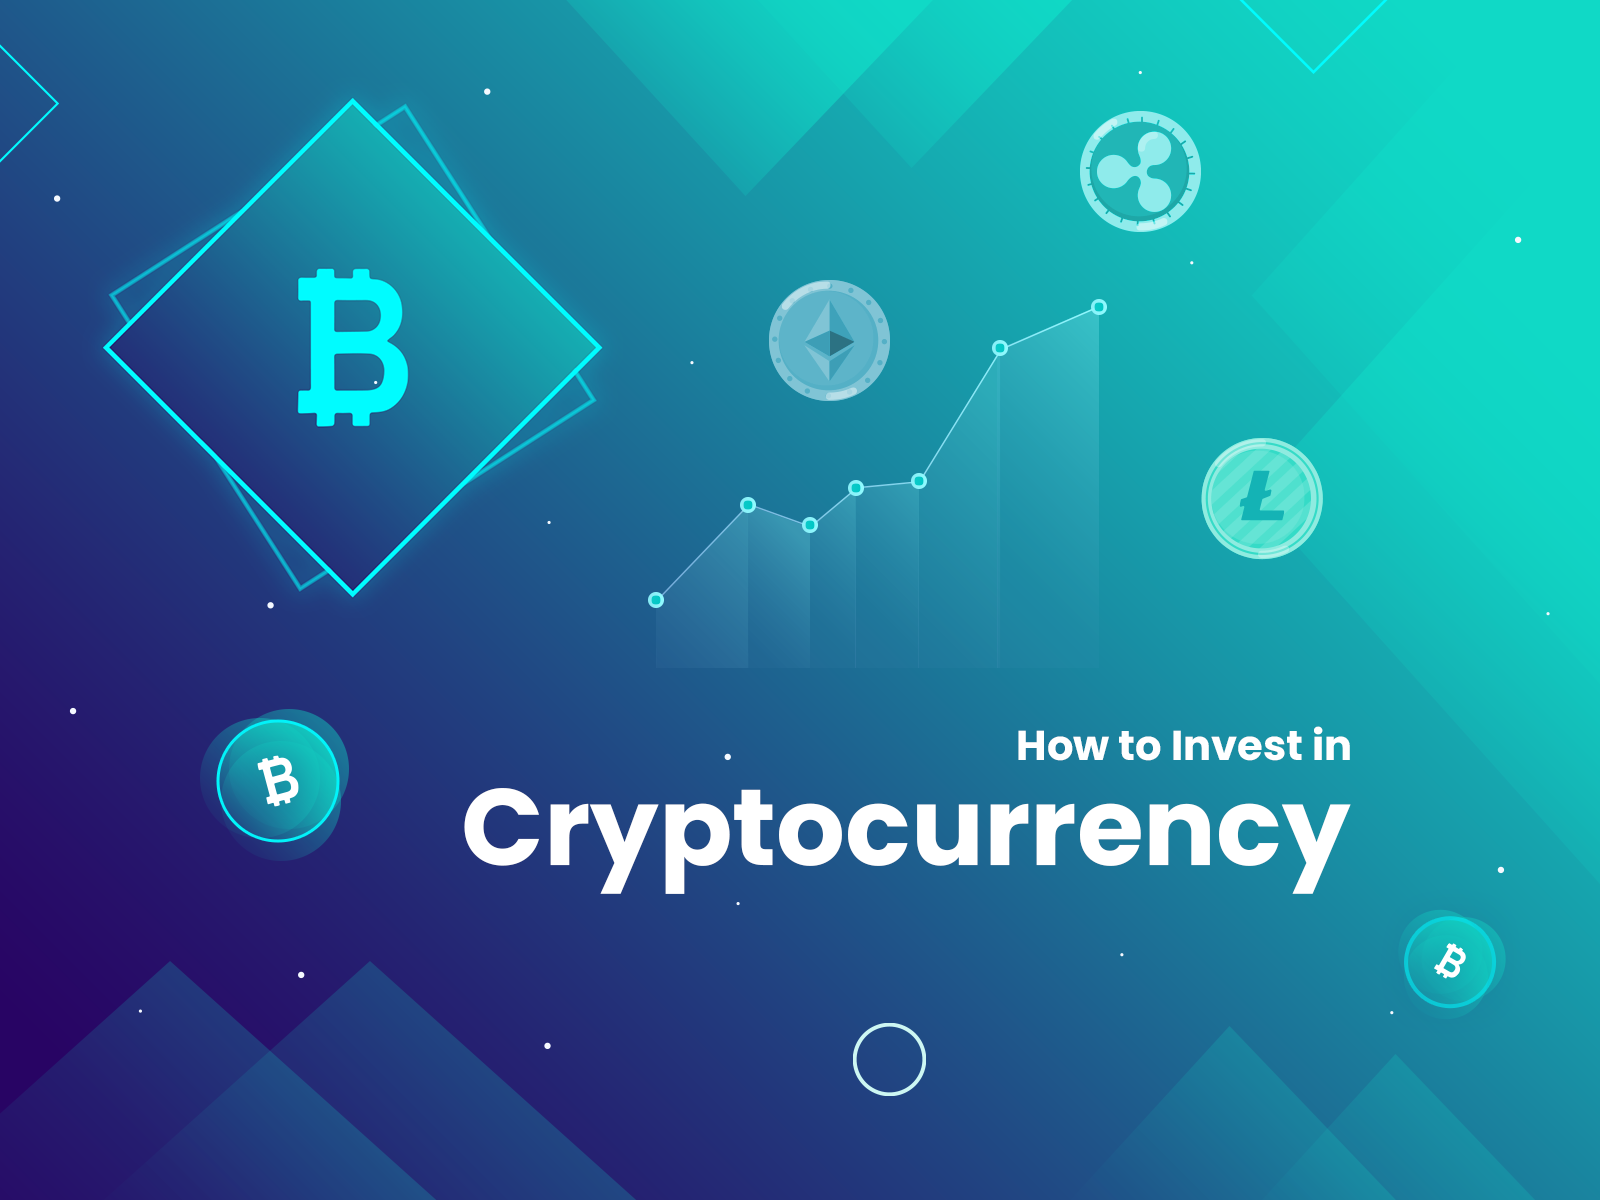 How To Invest In Cryptocurrency In The UK